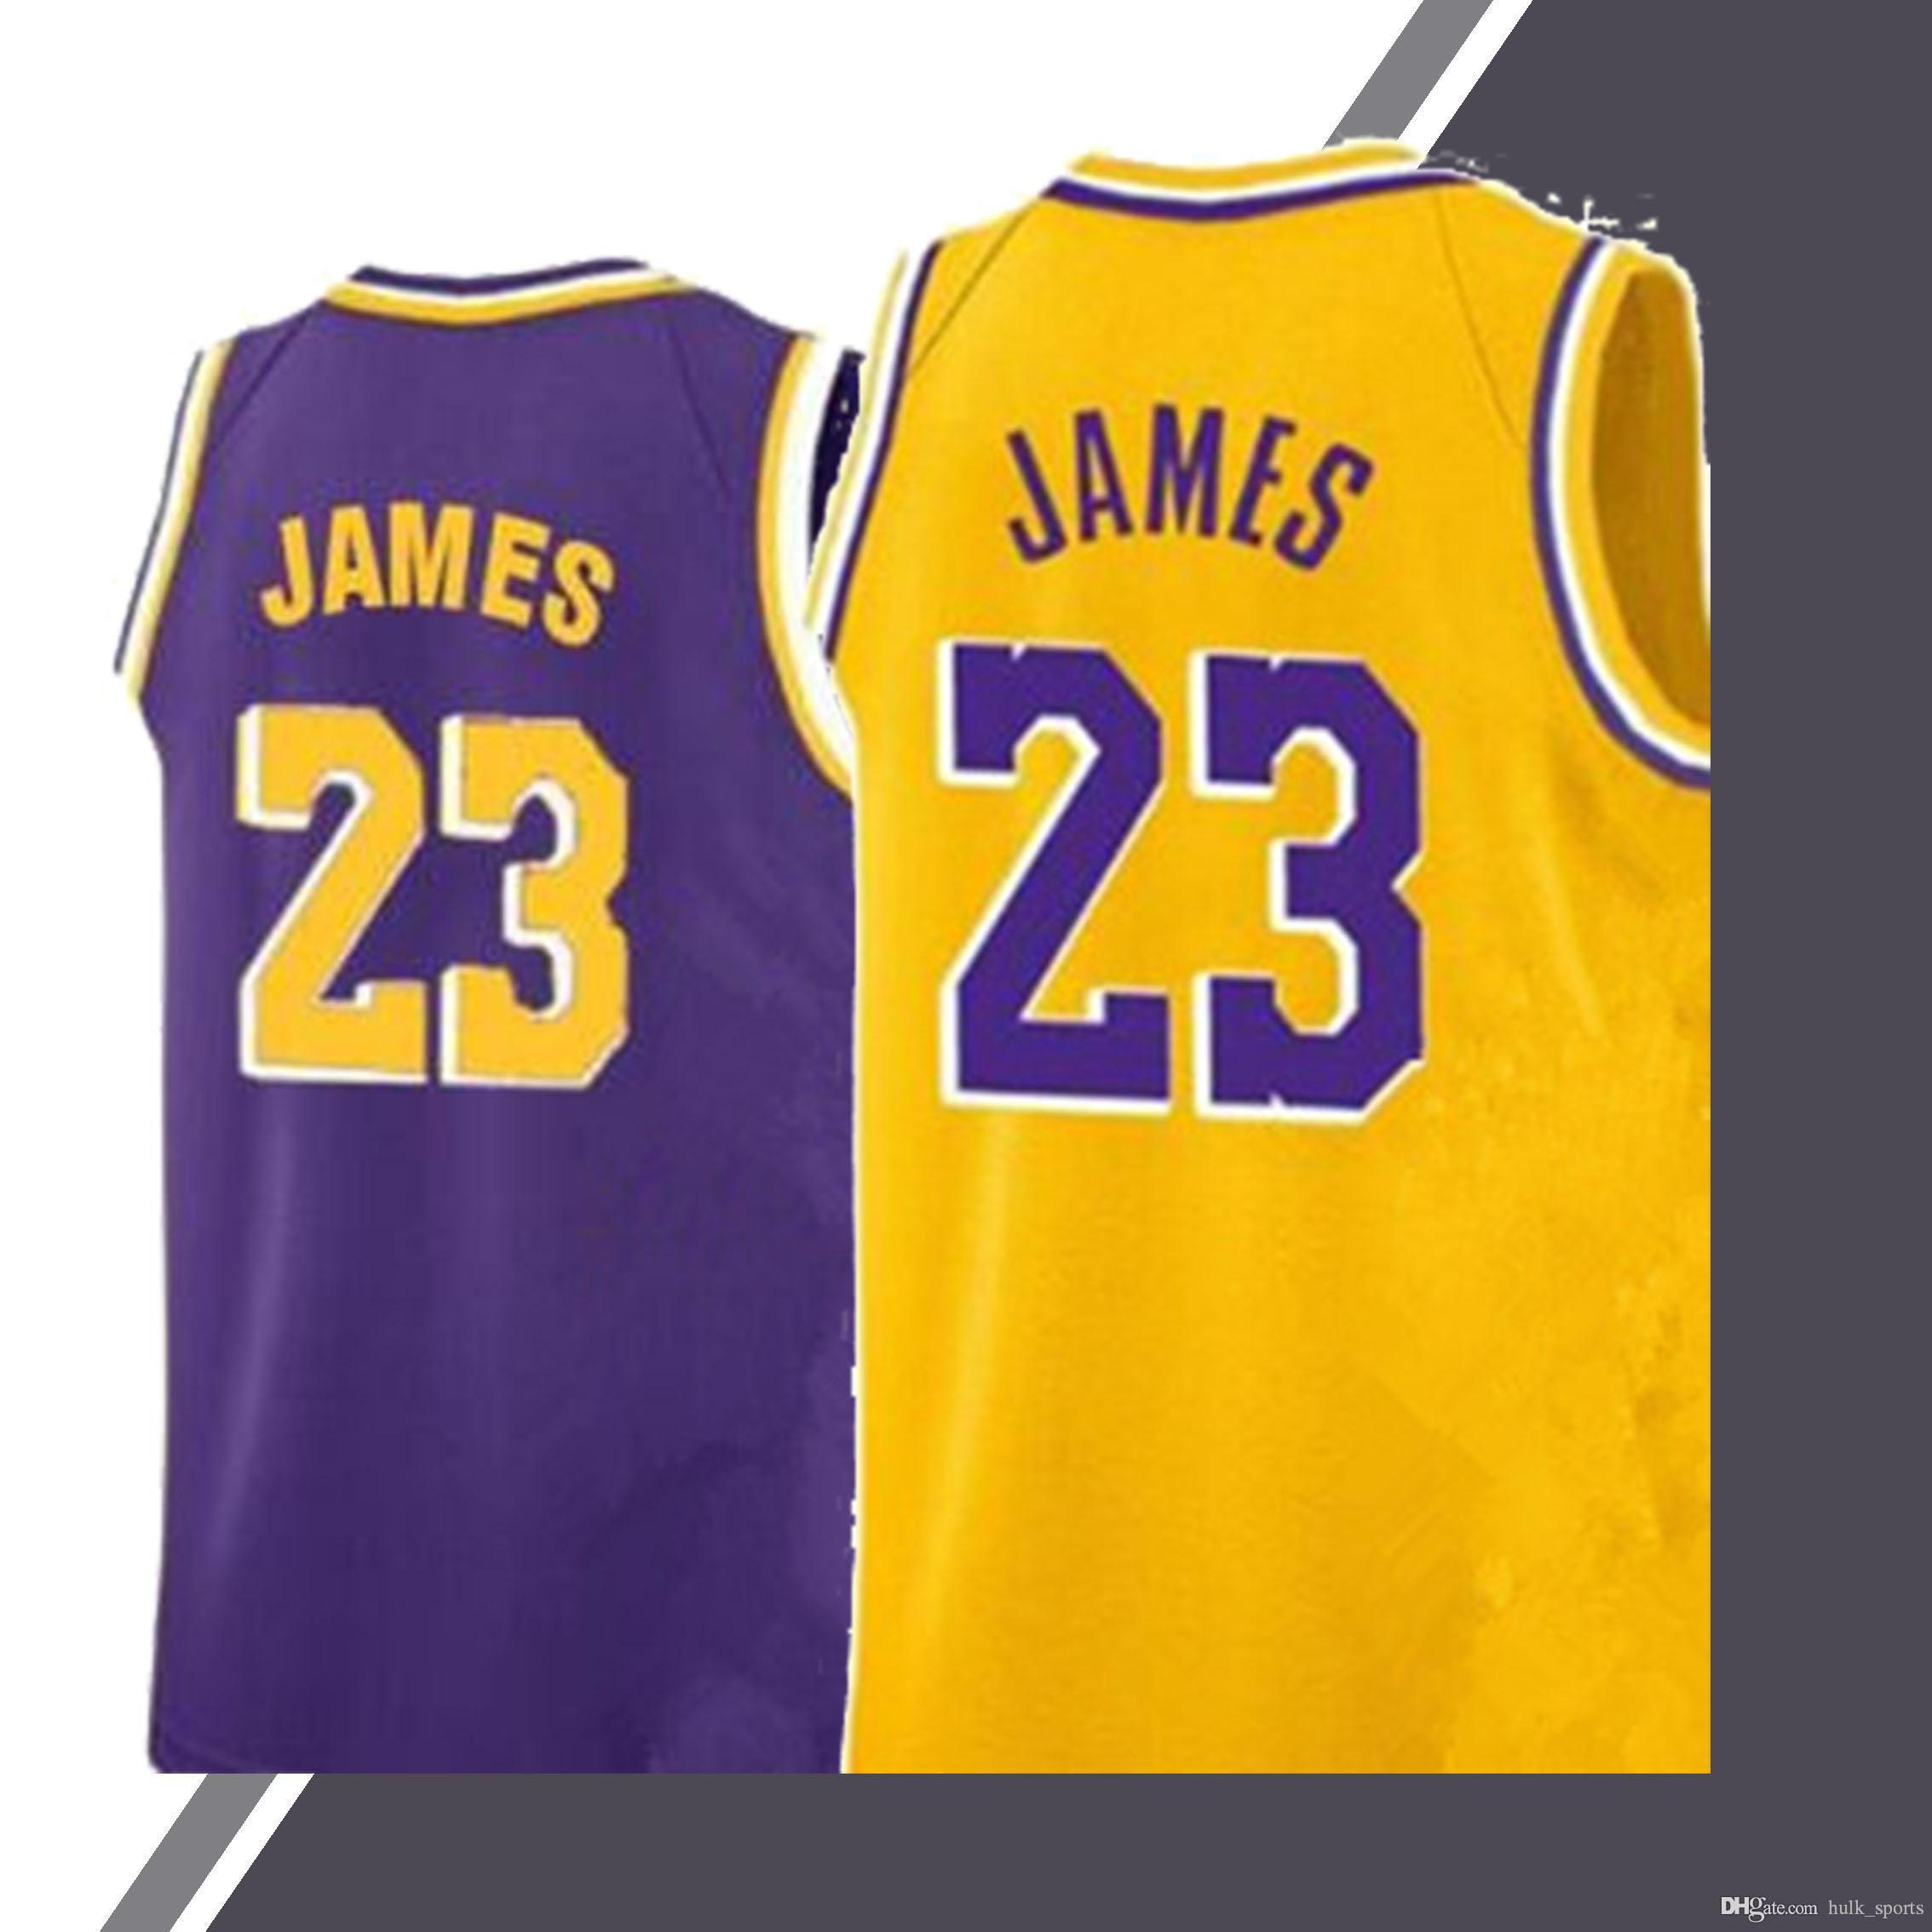 100% authentic f836e 2e383 23 LeBron James Los Angeles jersey Laker 24 Bryant 0 Kuzma 2 Ball Hot sale  2019 menbasketball jerseys